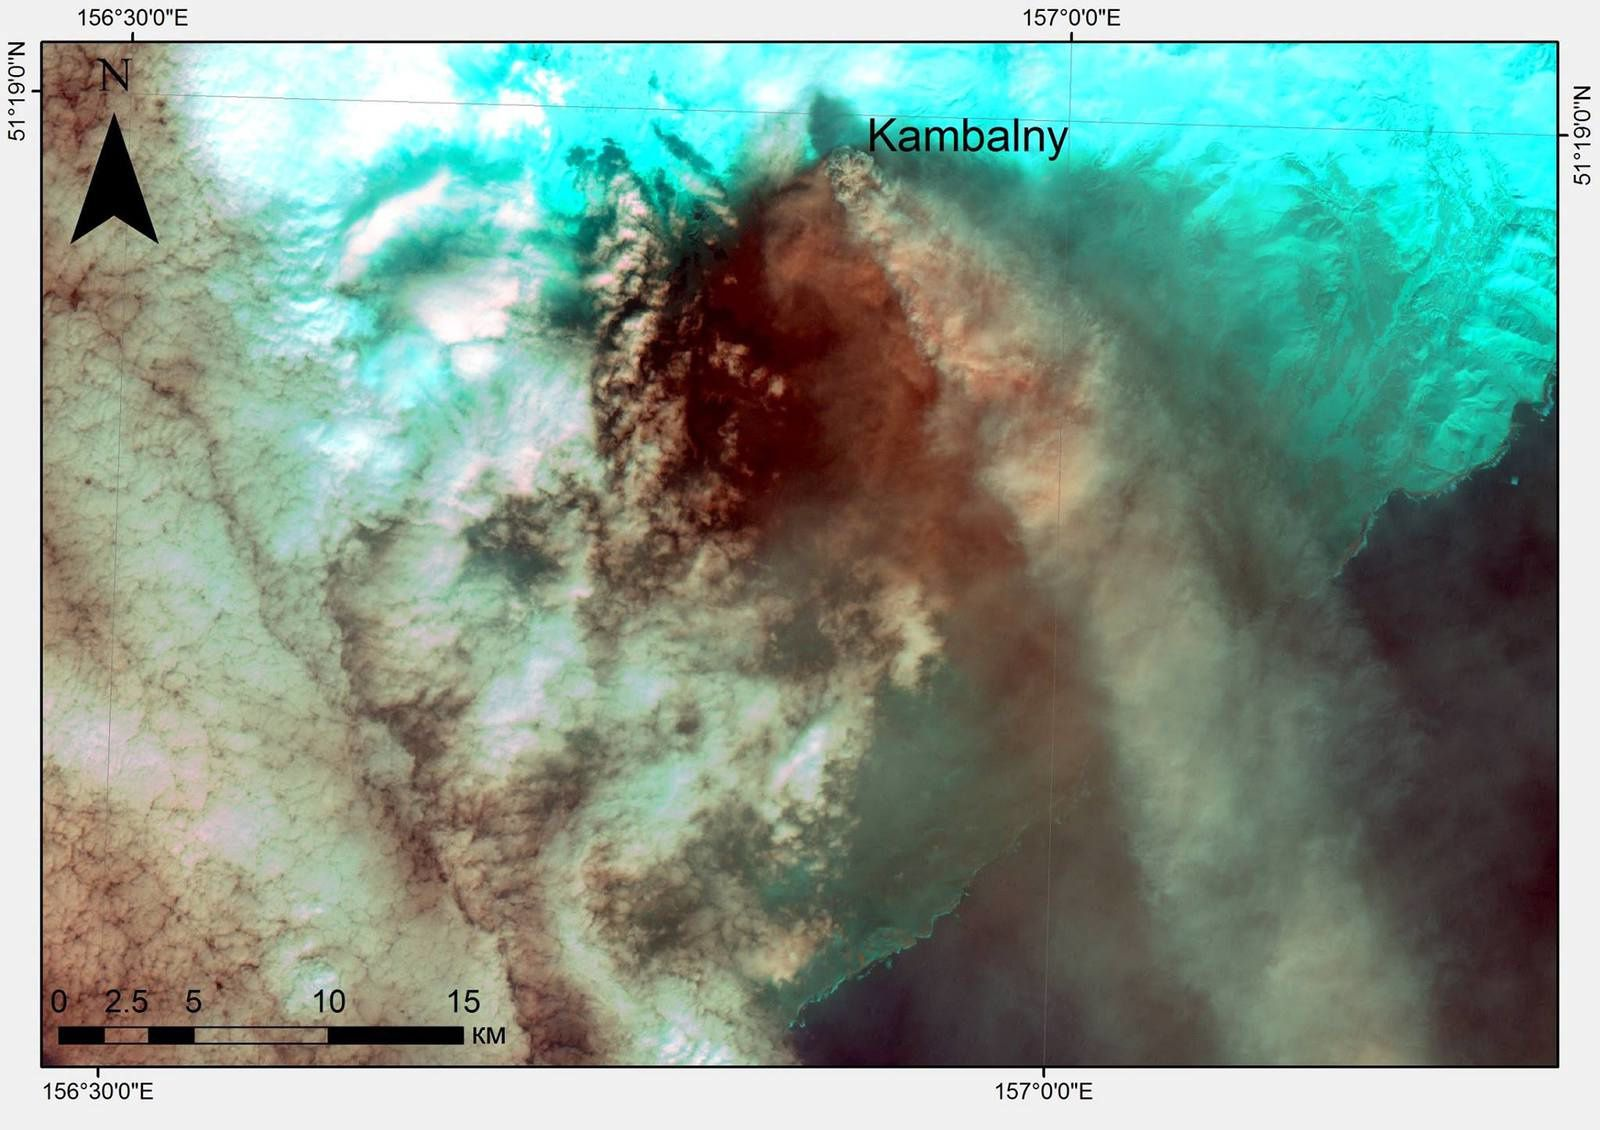 Volcano Kambalny, 27.03.2017. - image Landsat 7 via Dmitry Melnikov - Note by comparing the 2 photos, the change of orientation of the winds and the plume from one day to another.